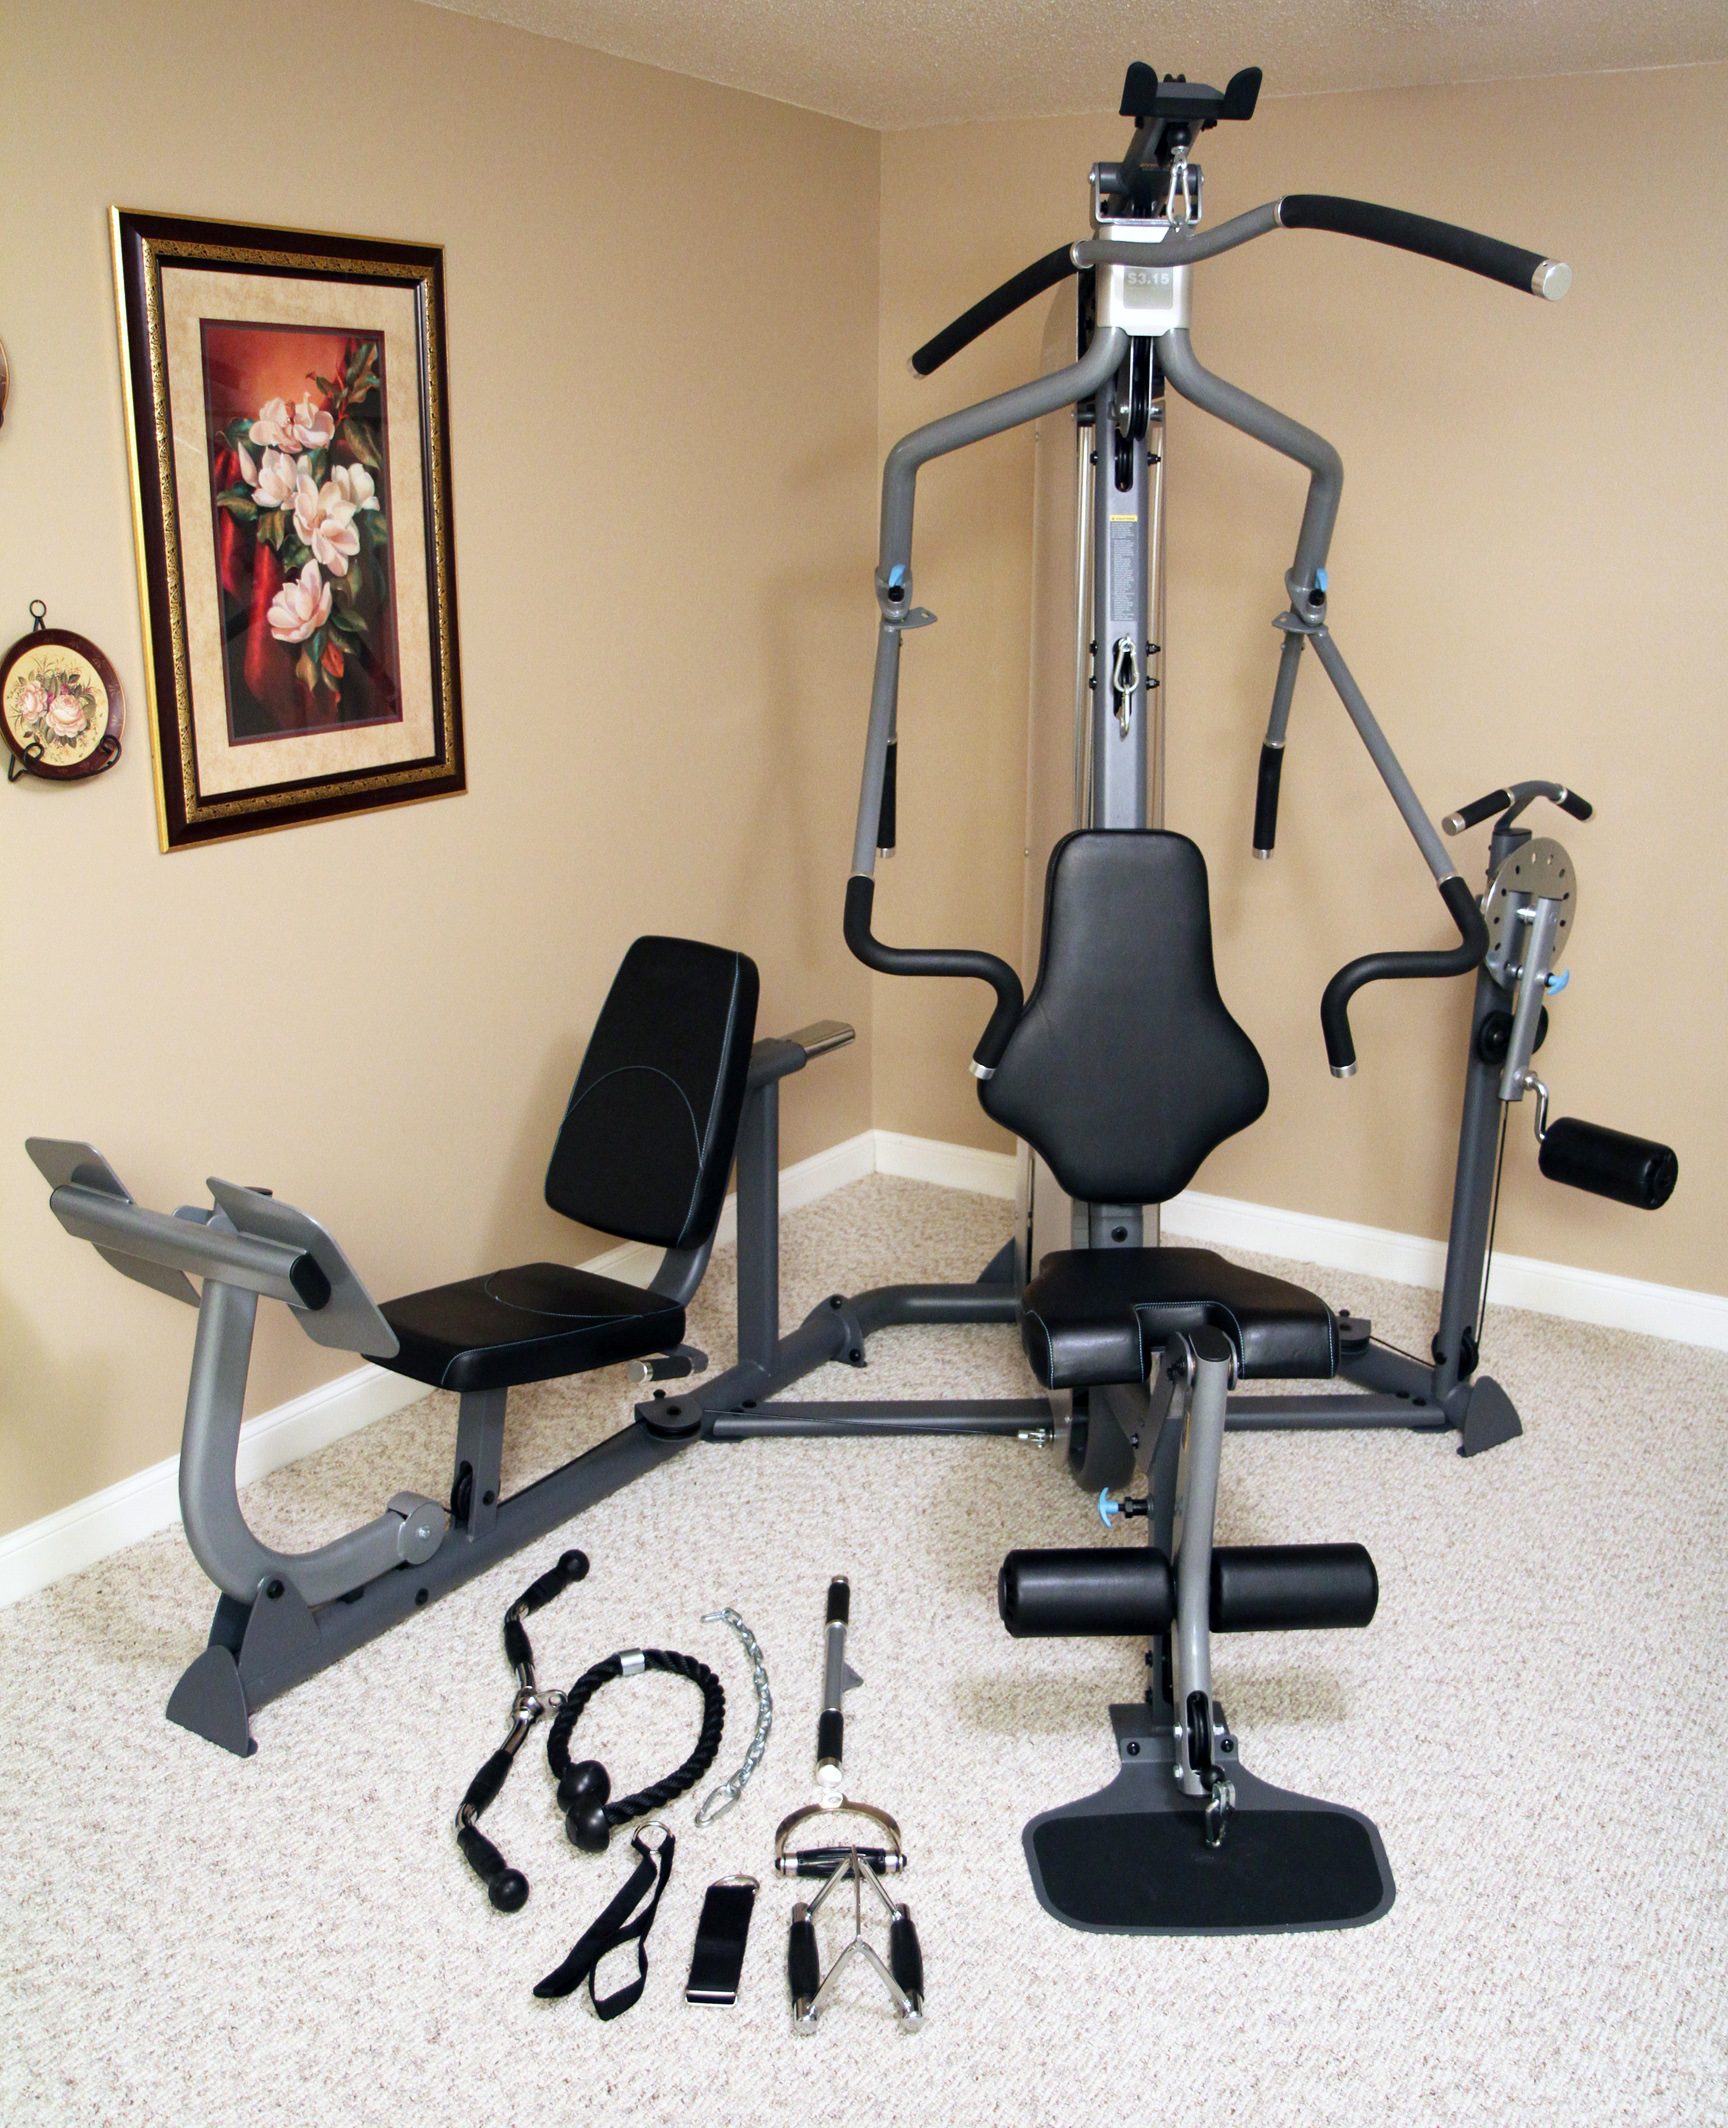 Precor zuma home images pacific fitness multi